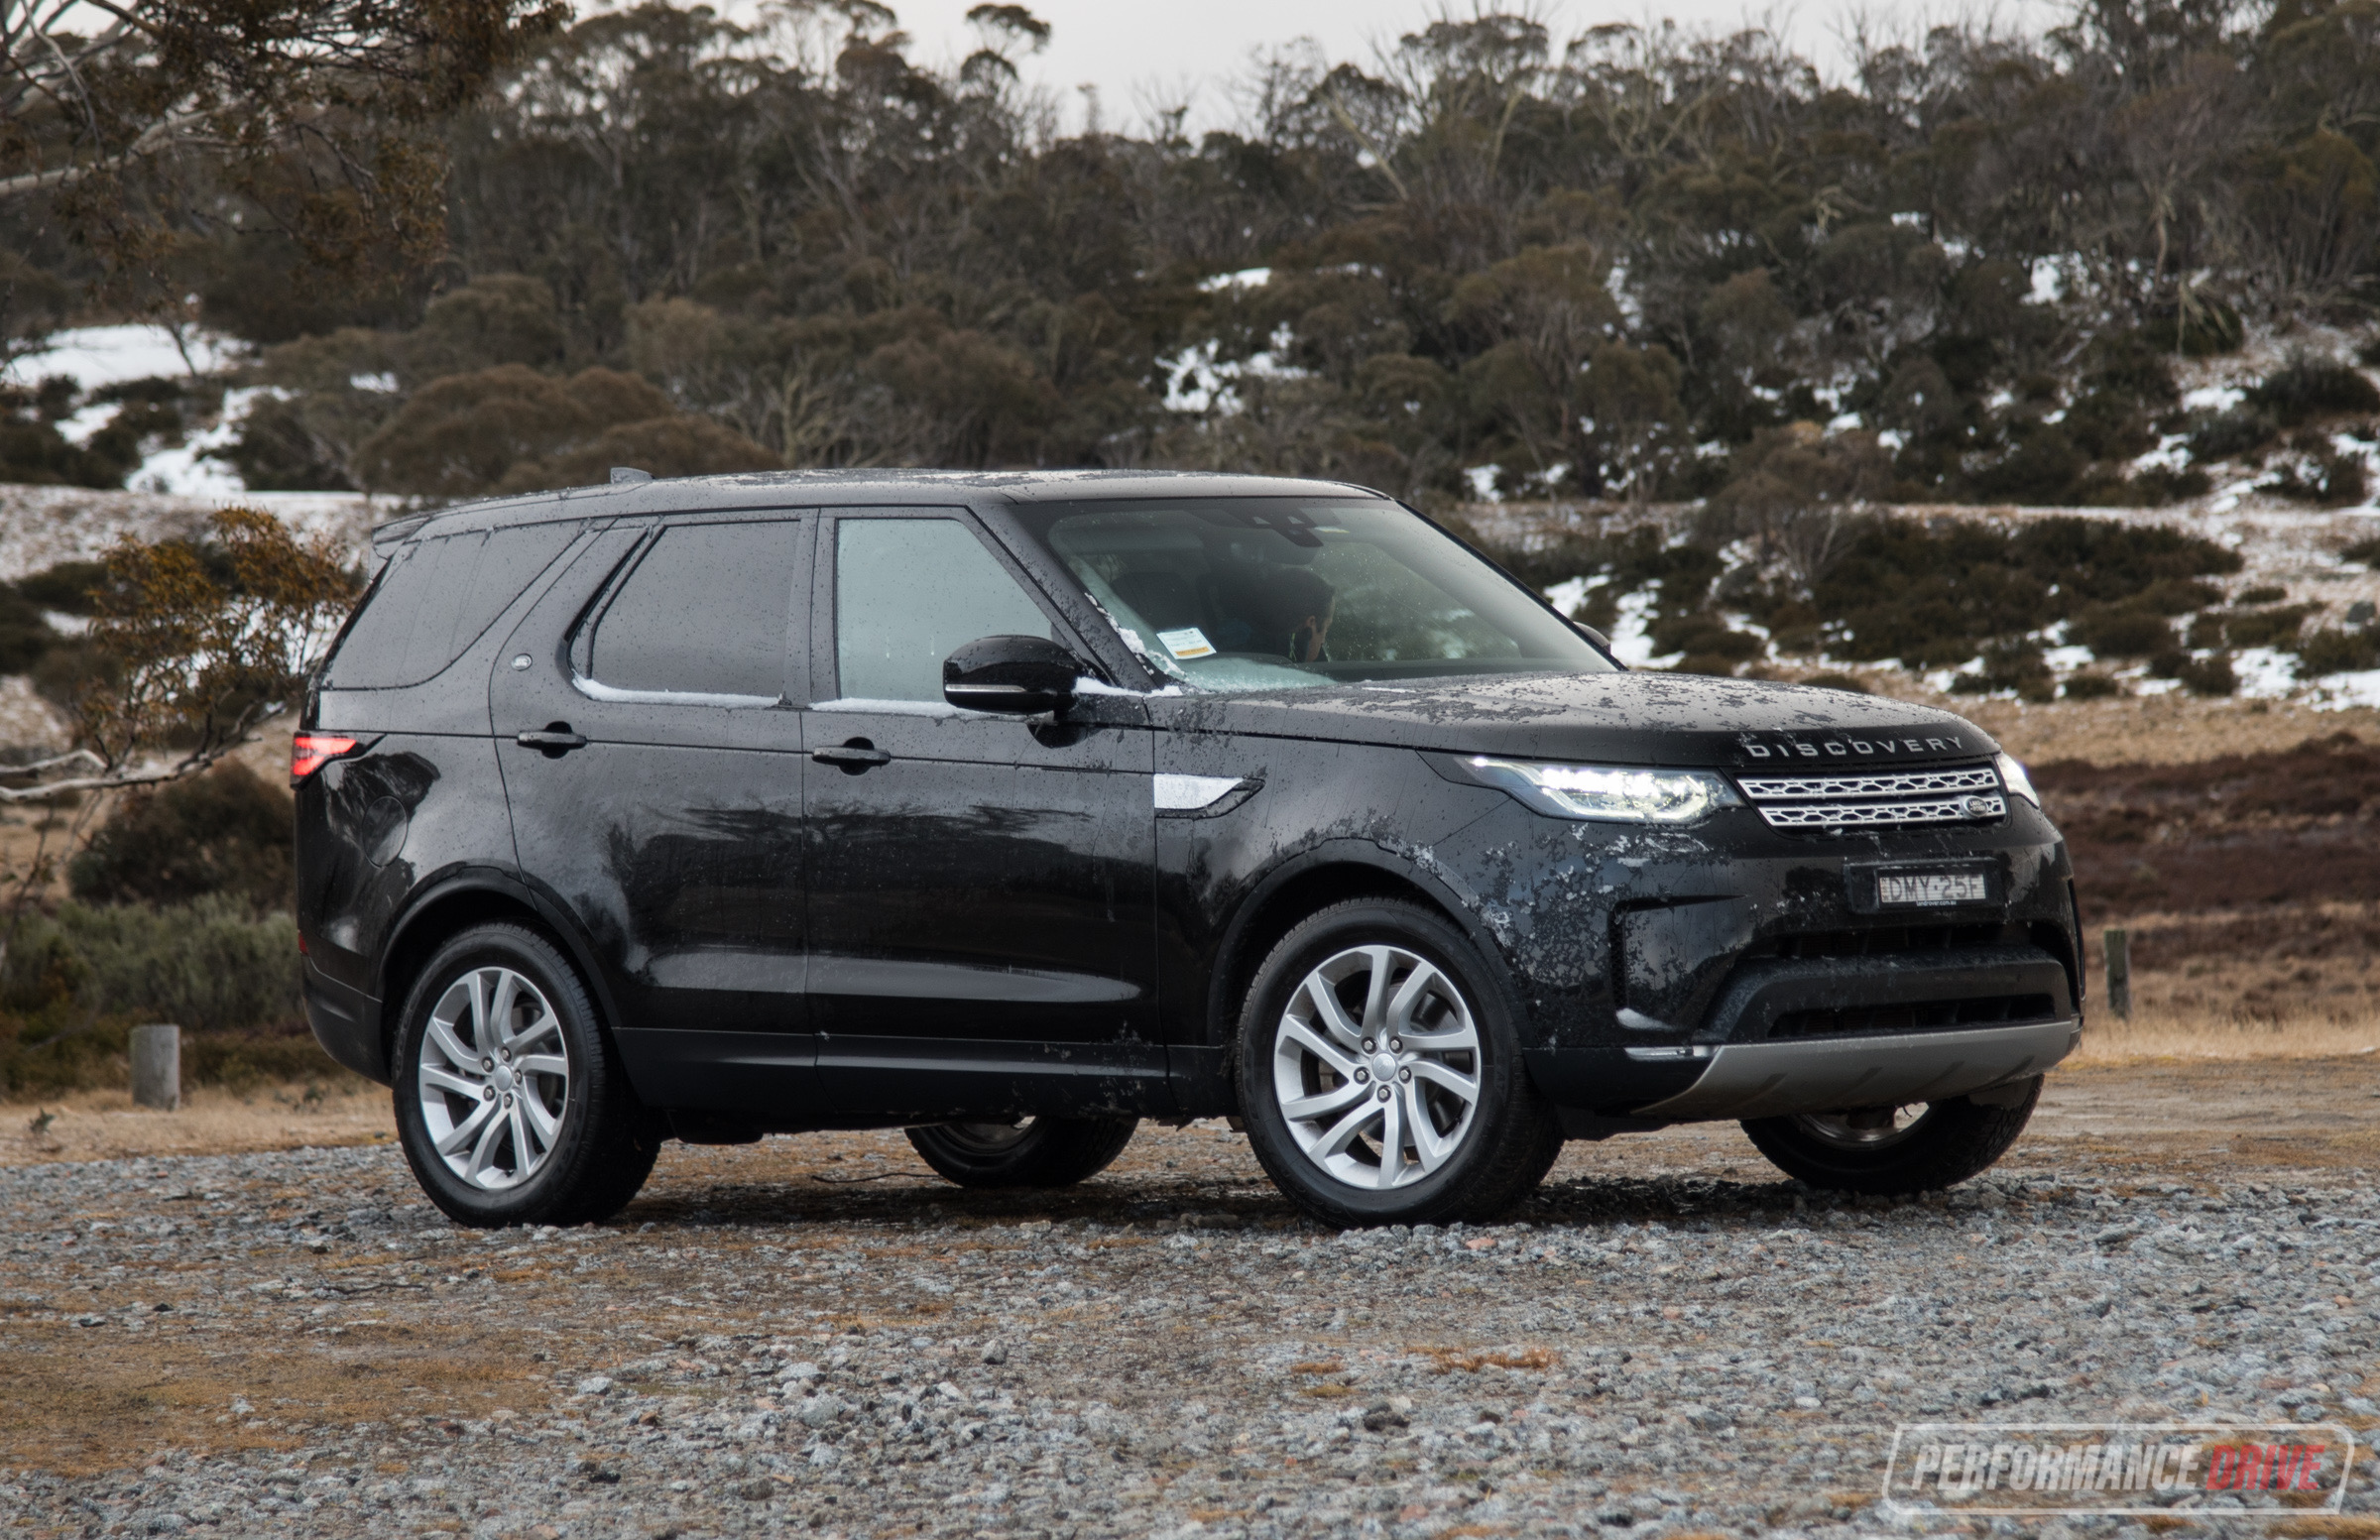 2017 land rover discovery sd4 hse review video performancedrive. Black Bedroom Furniture Sets. Home Design Ideas